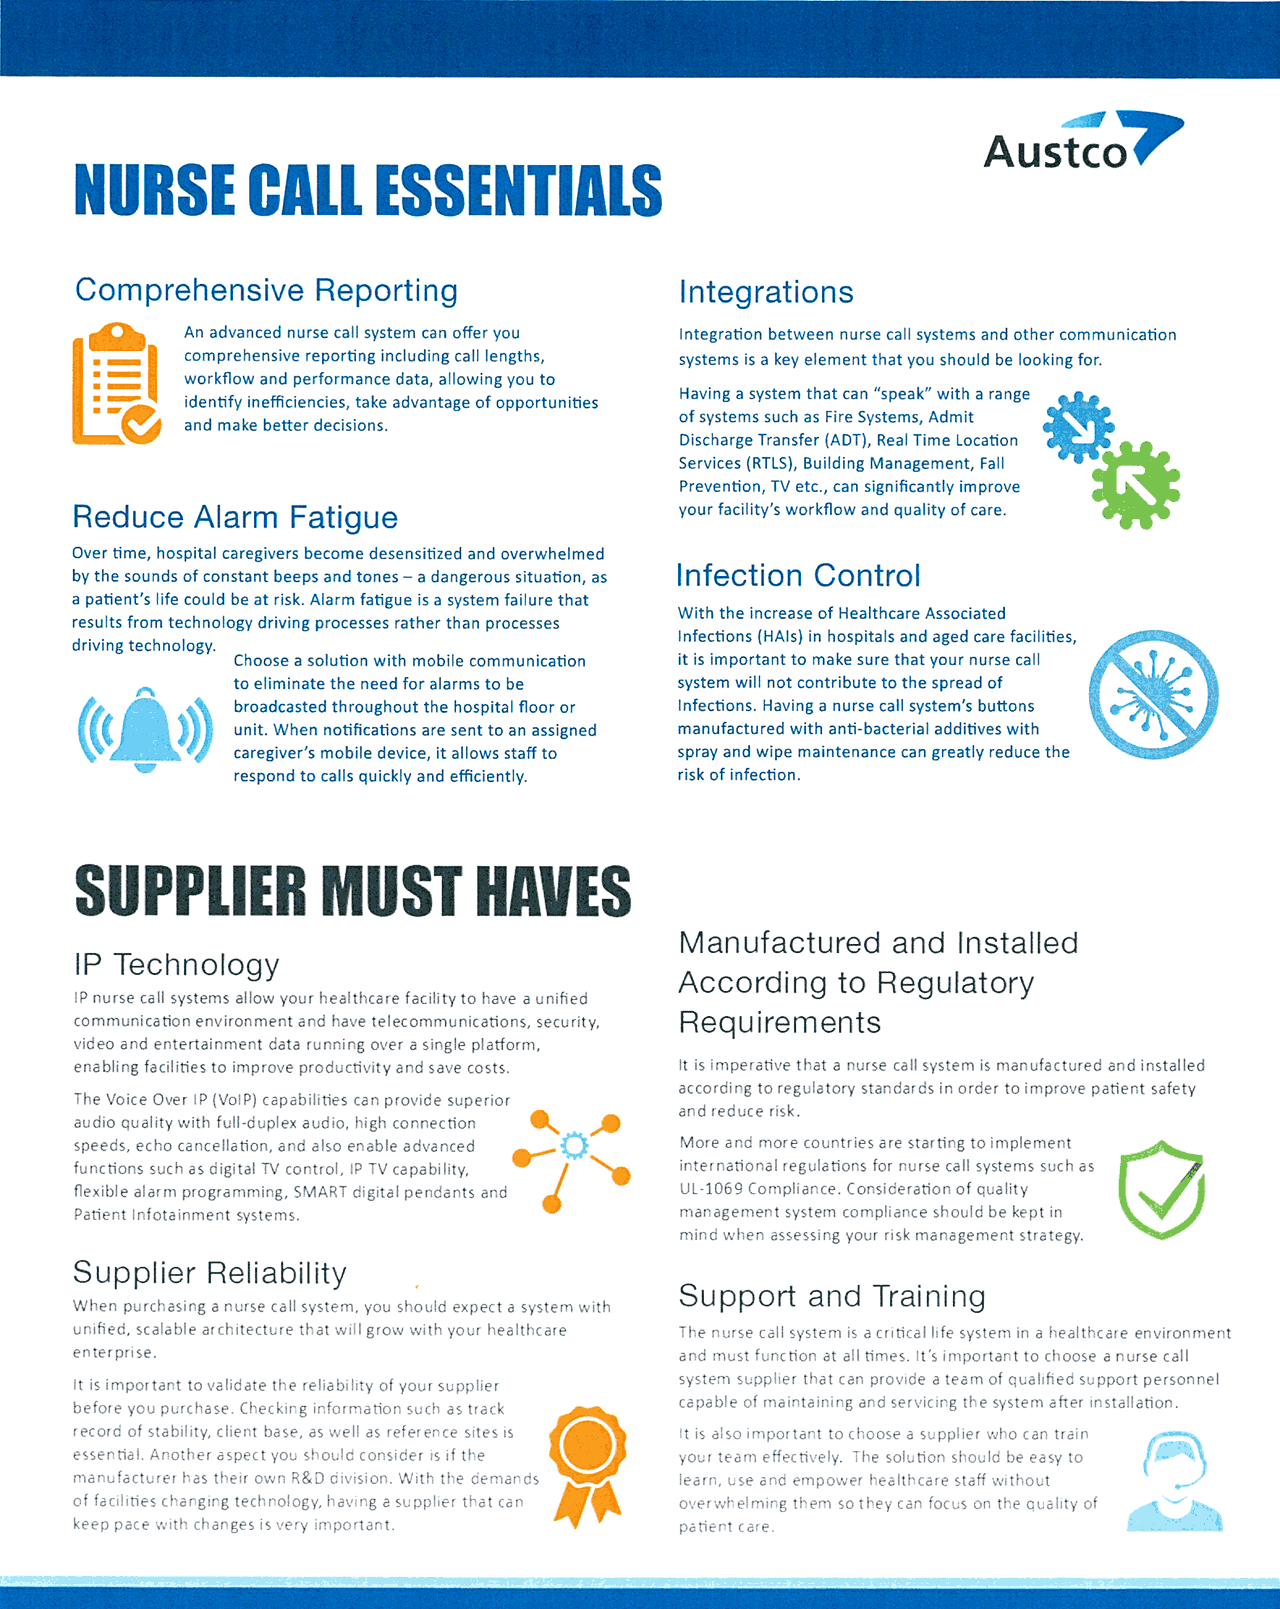 Key components of an effective Nurse Call system